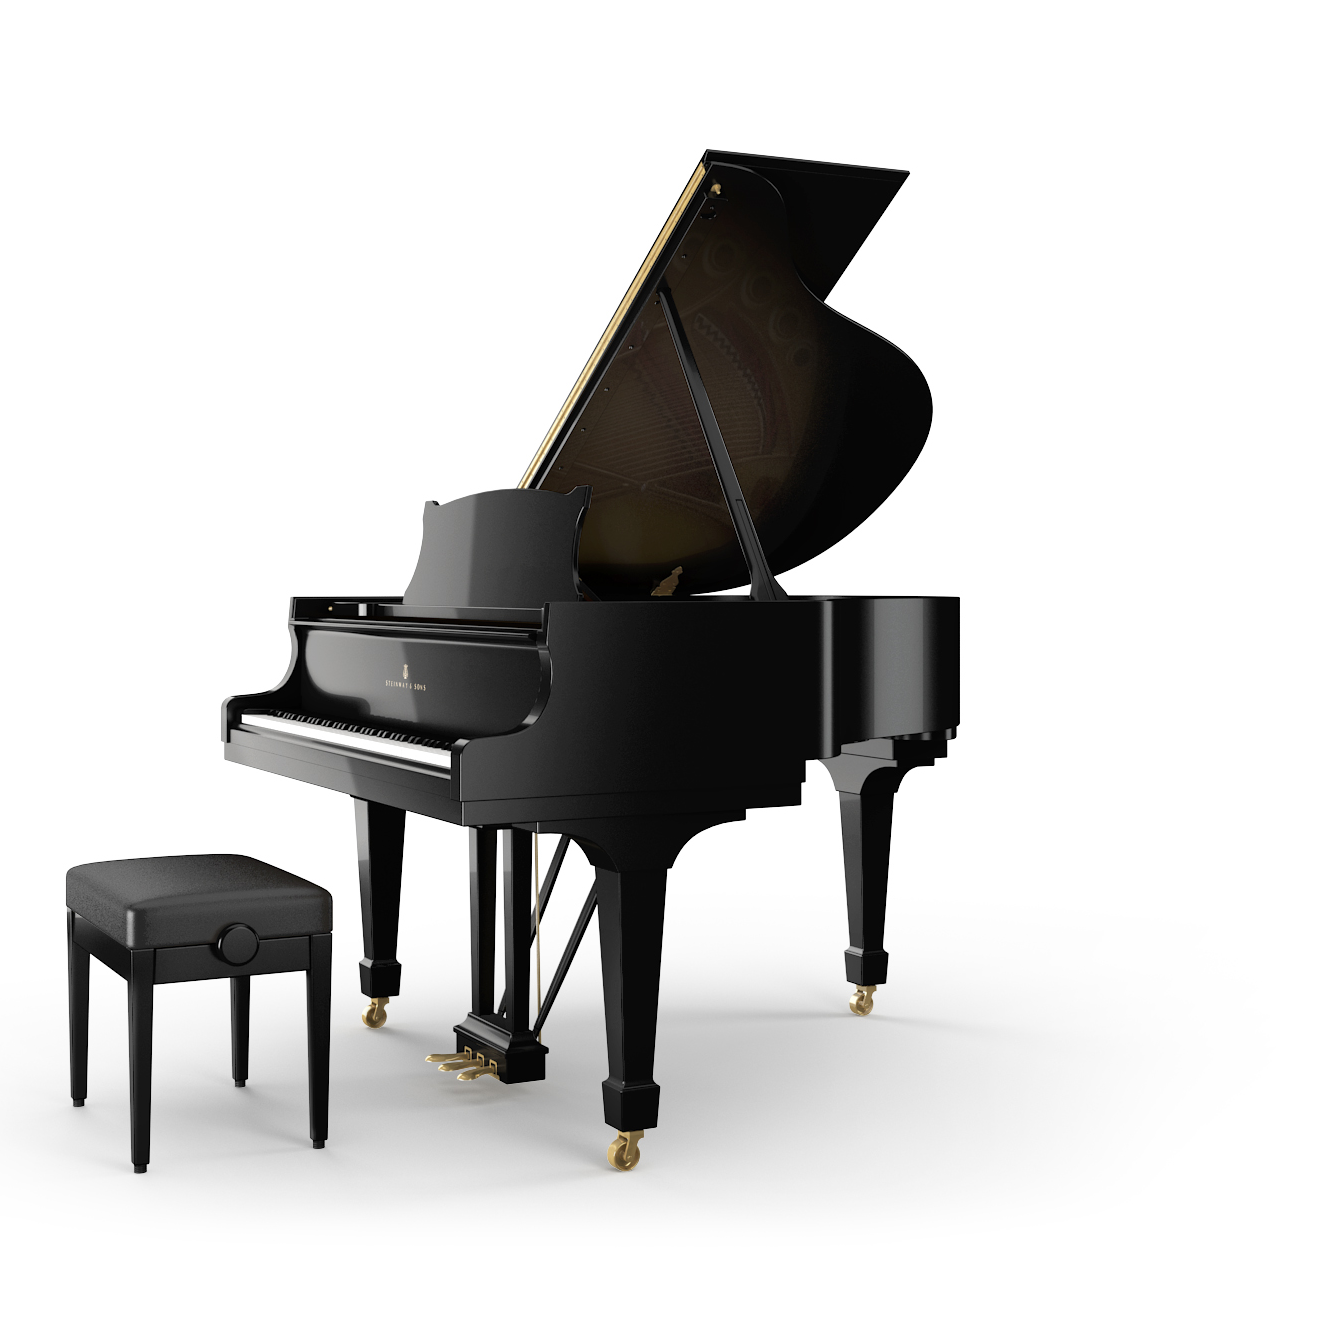 Steinway sons grand piano s 155 the piano details for Smallest baby grand piano dimensions